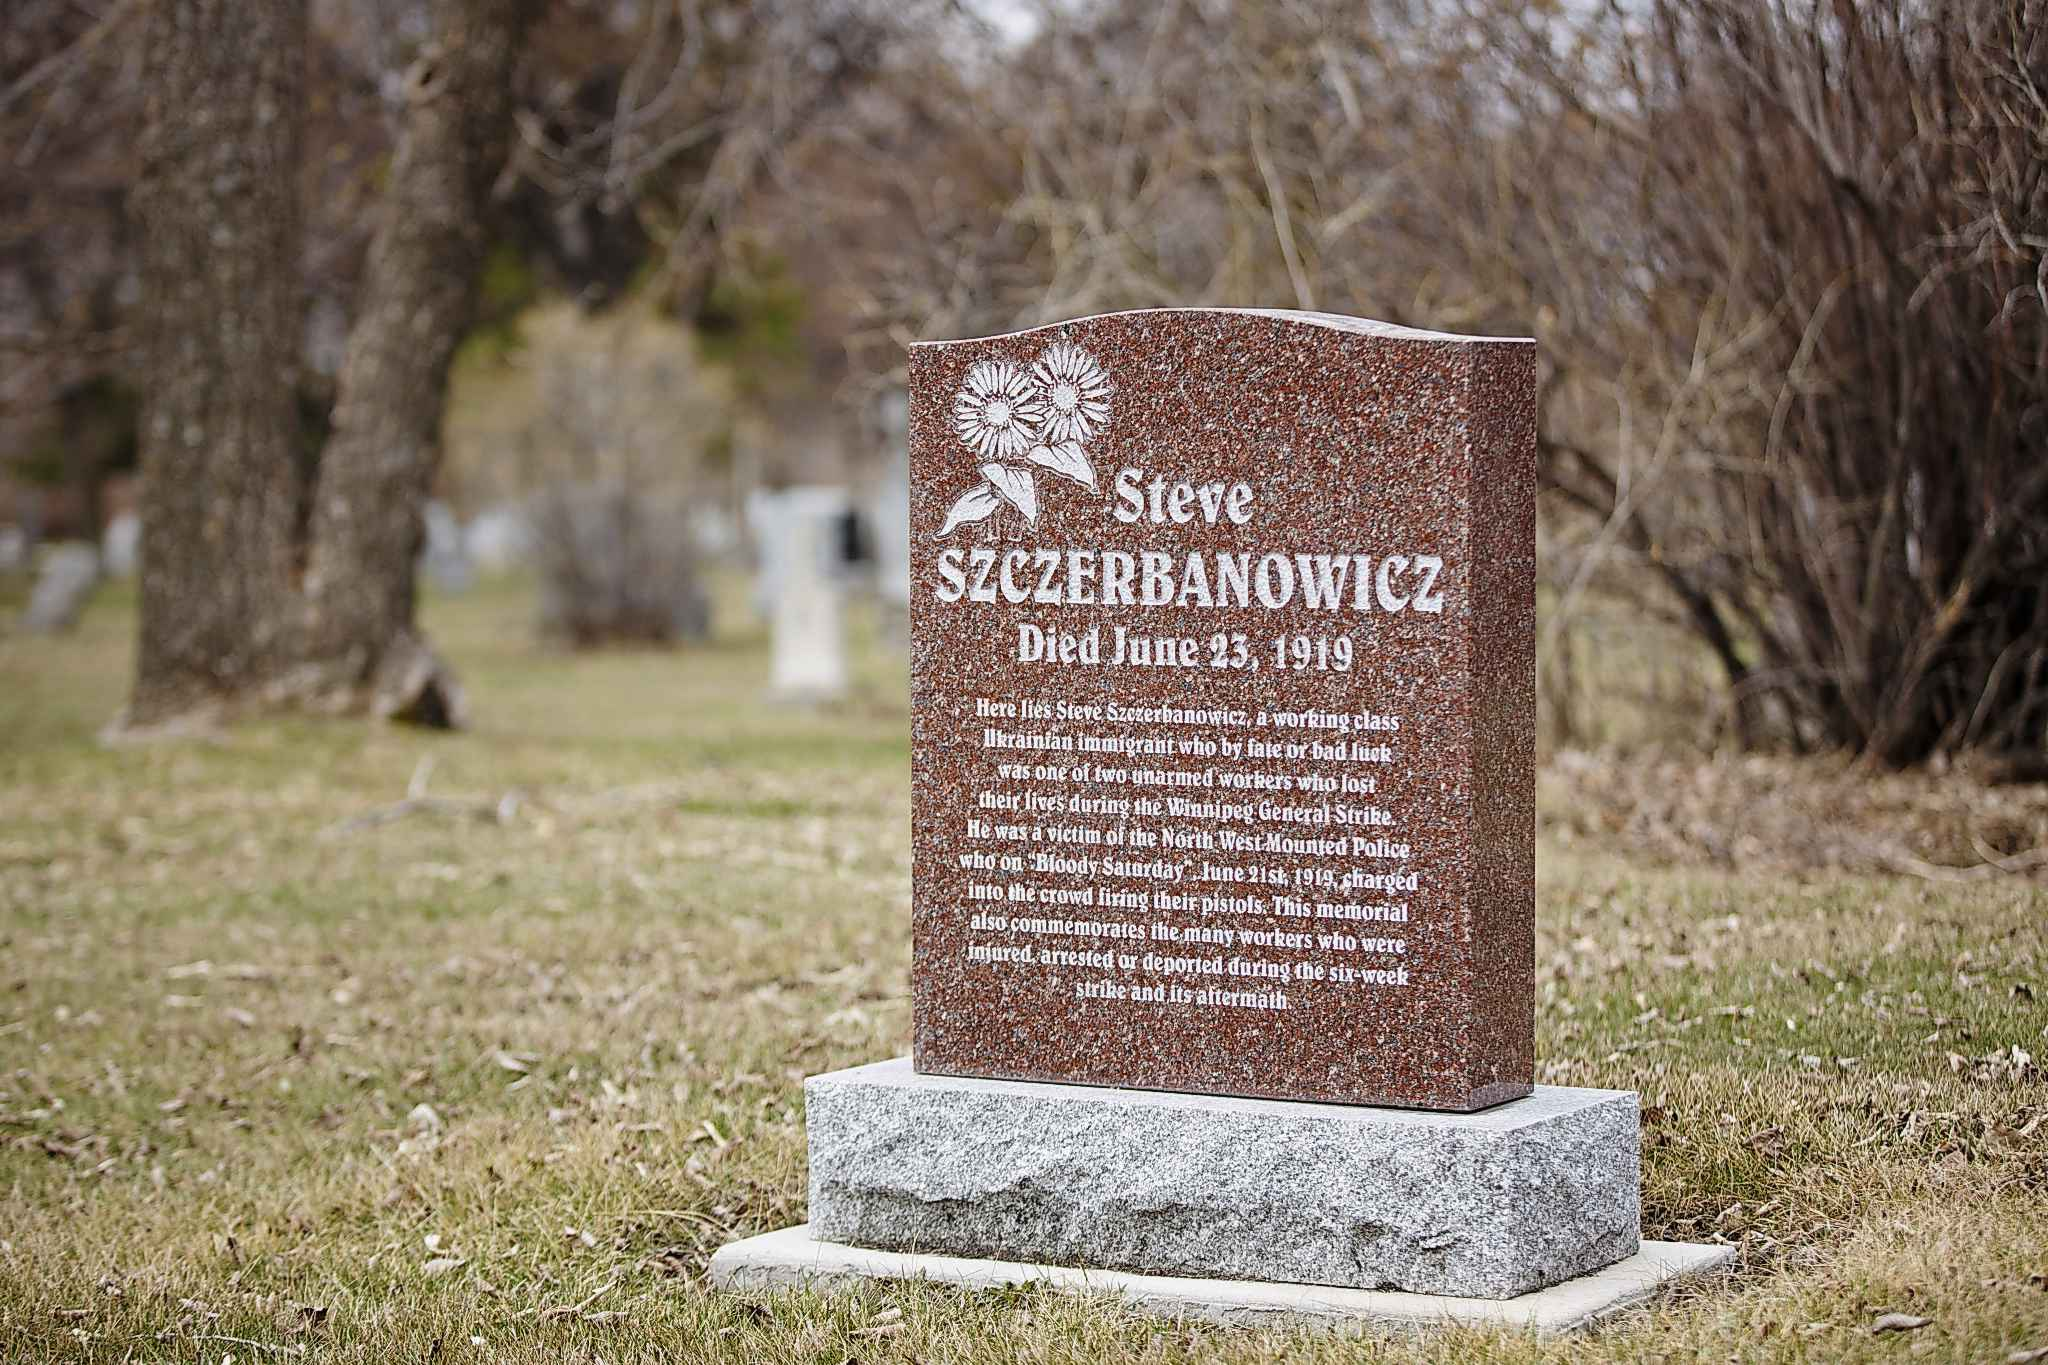 Steve Szczerbanowicz was one of two men who lost their lives during the Winnipeg General Strike.